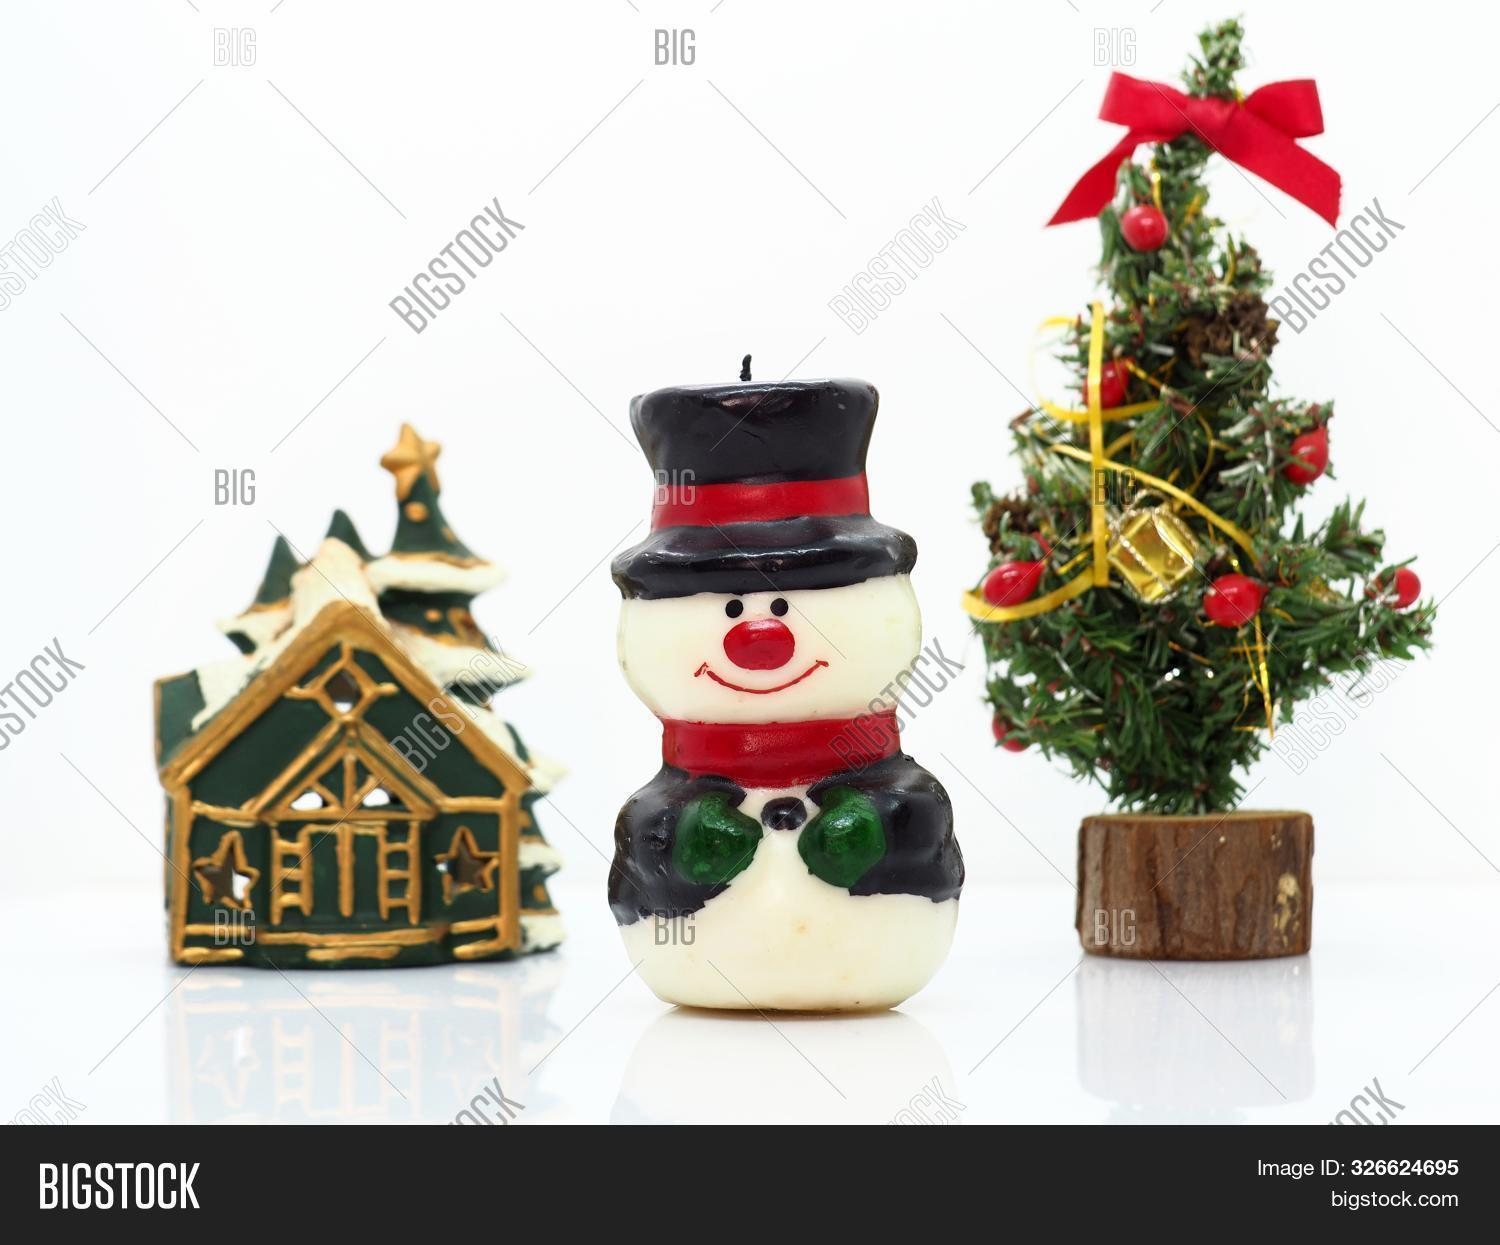 Small Snowman Image Photo Free Trial Bigstock